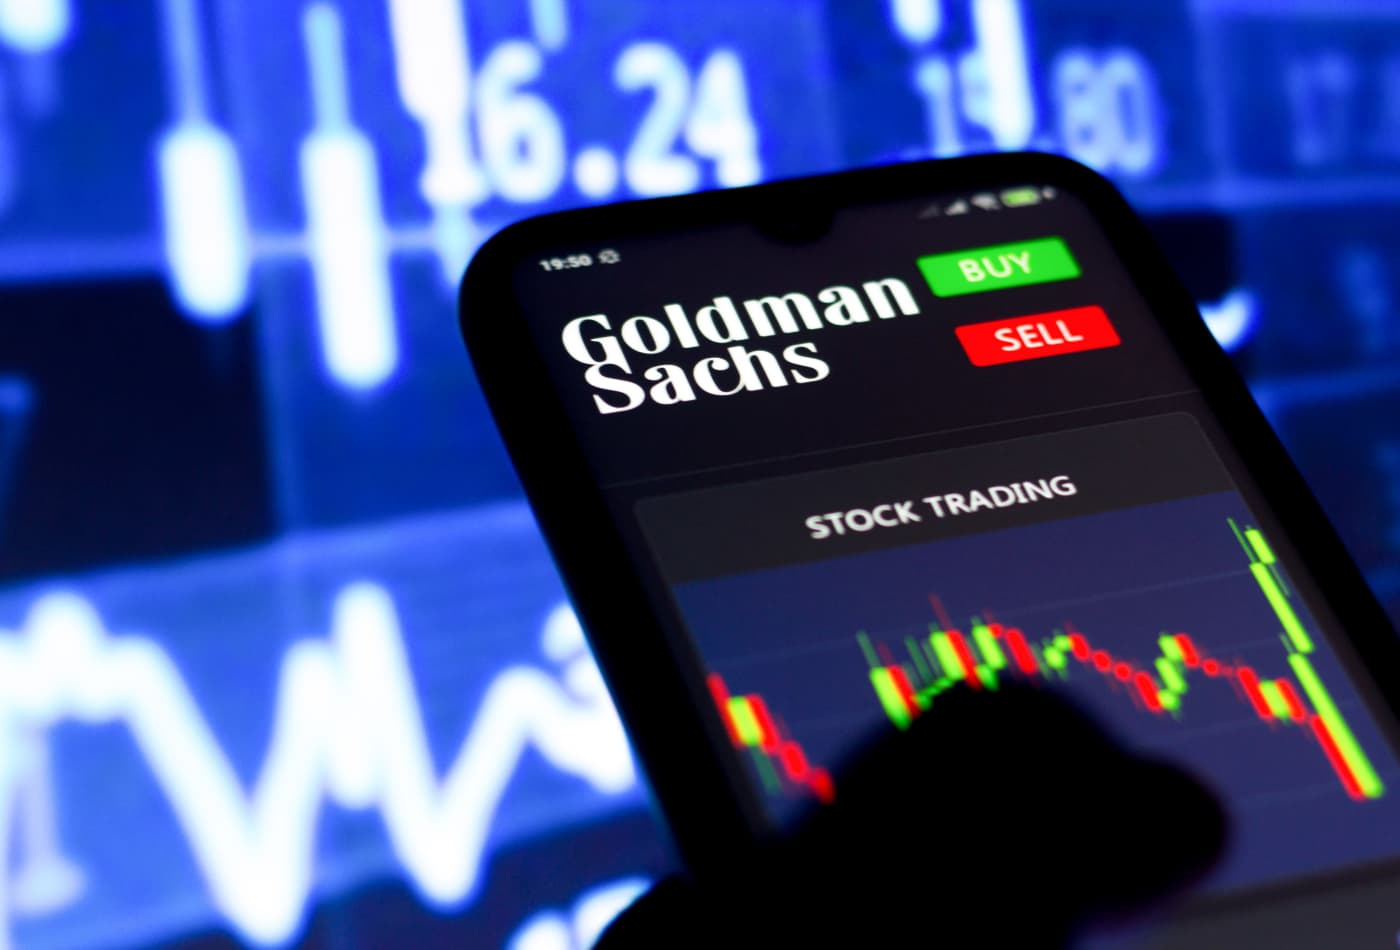 Goldman Sachs picks new stocks to buy from tech to health — some with over 100% upside